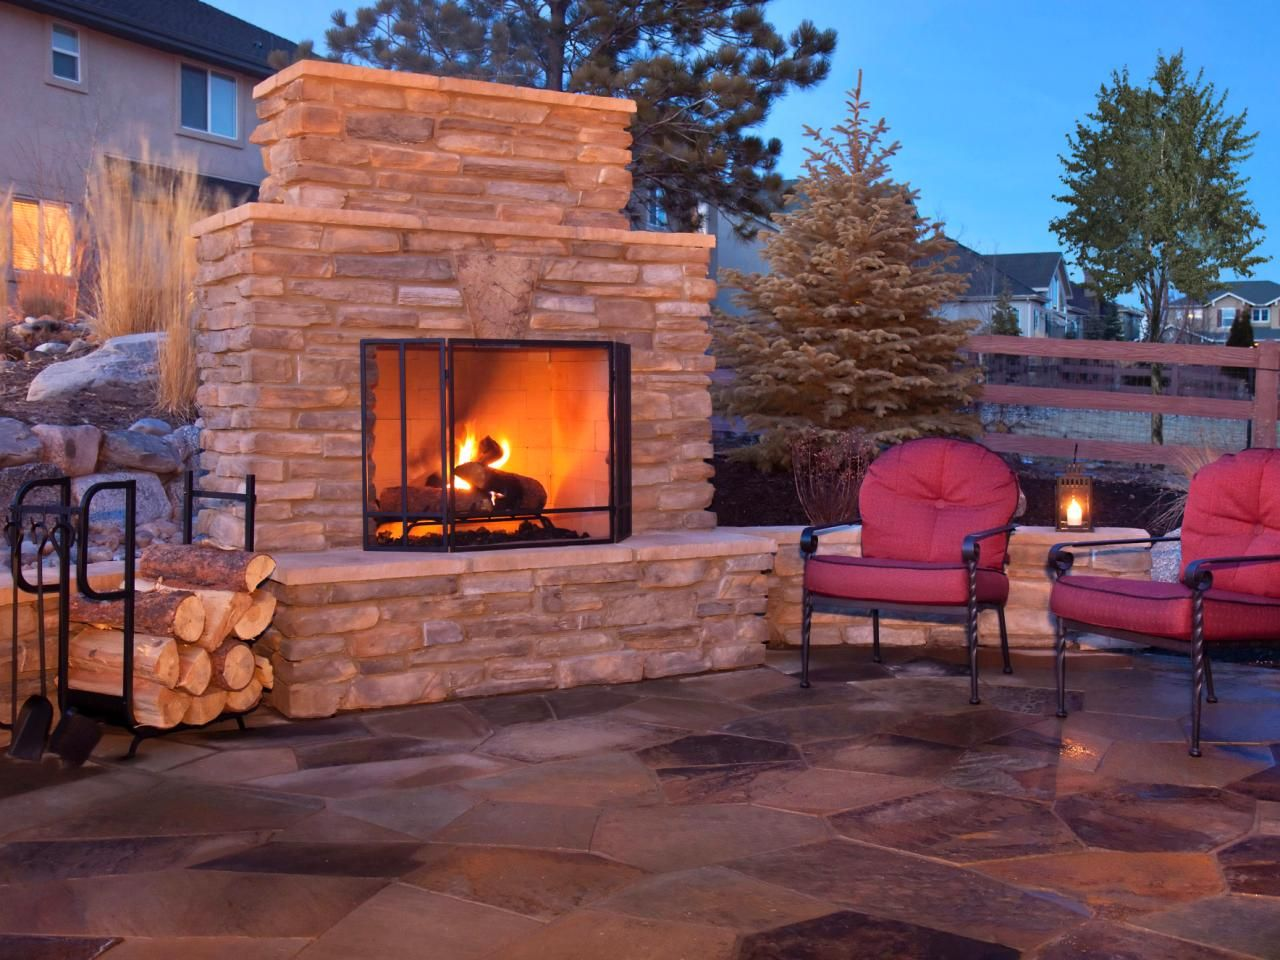 Best 25+ Outdoor fireplace plans ideas on Pinterest | Diy outdoor ...